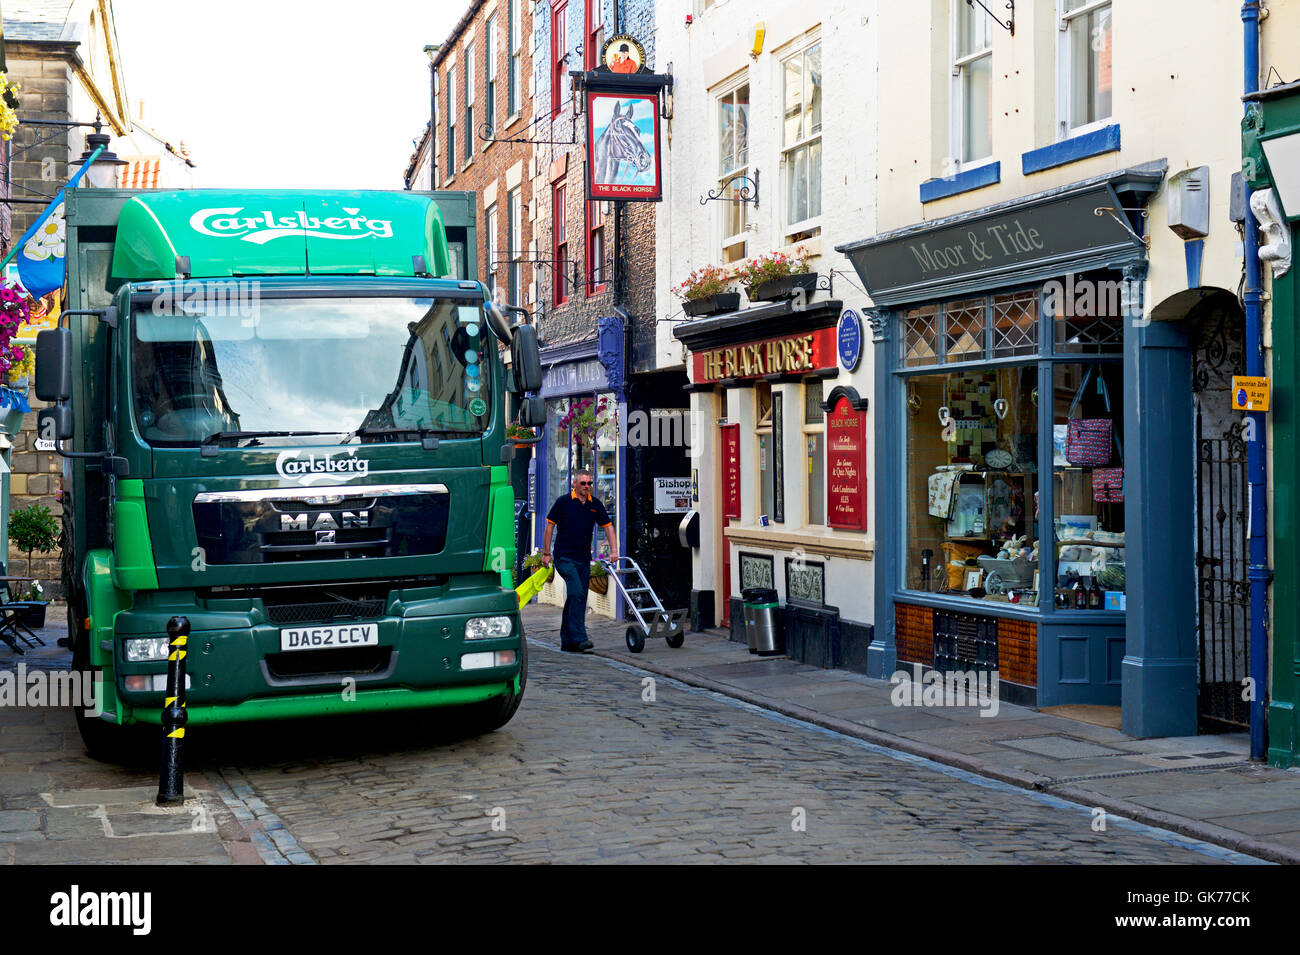 Carlsberg lorry parked on cobbled street outside pub, the Black Horse, Whitby, North Yorkshire, England UK - Stock Image